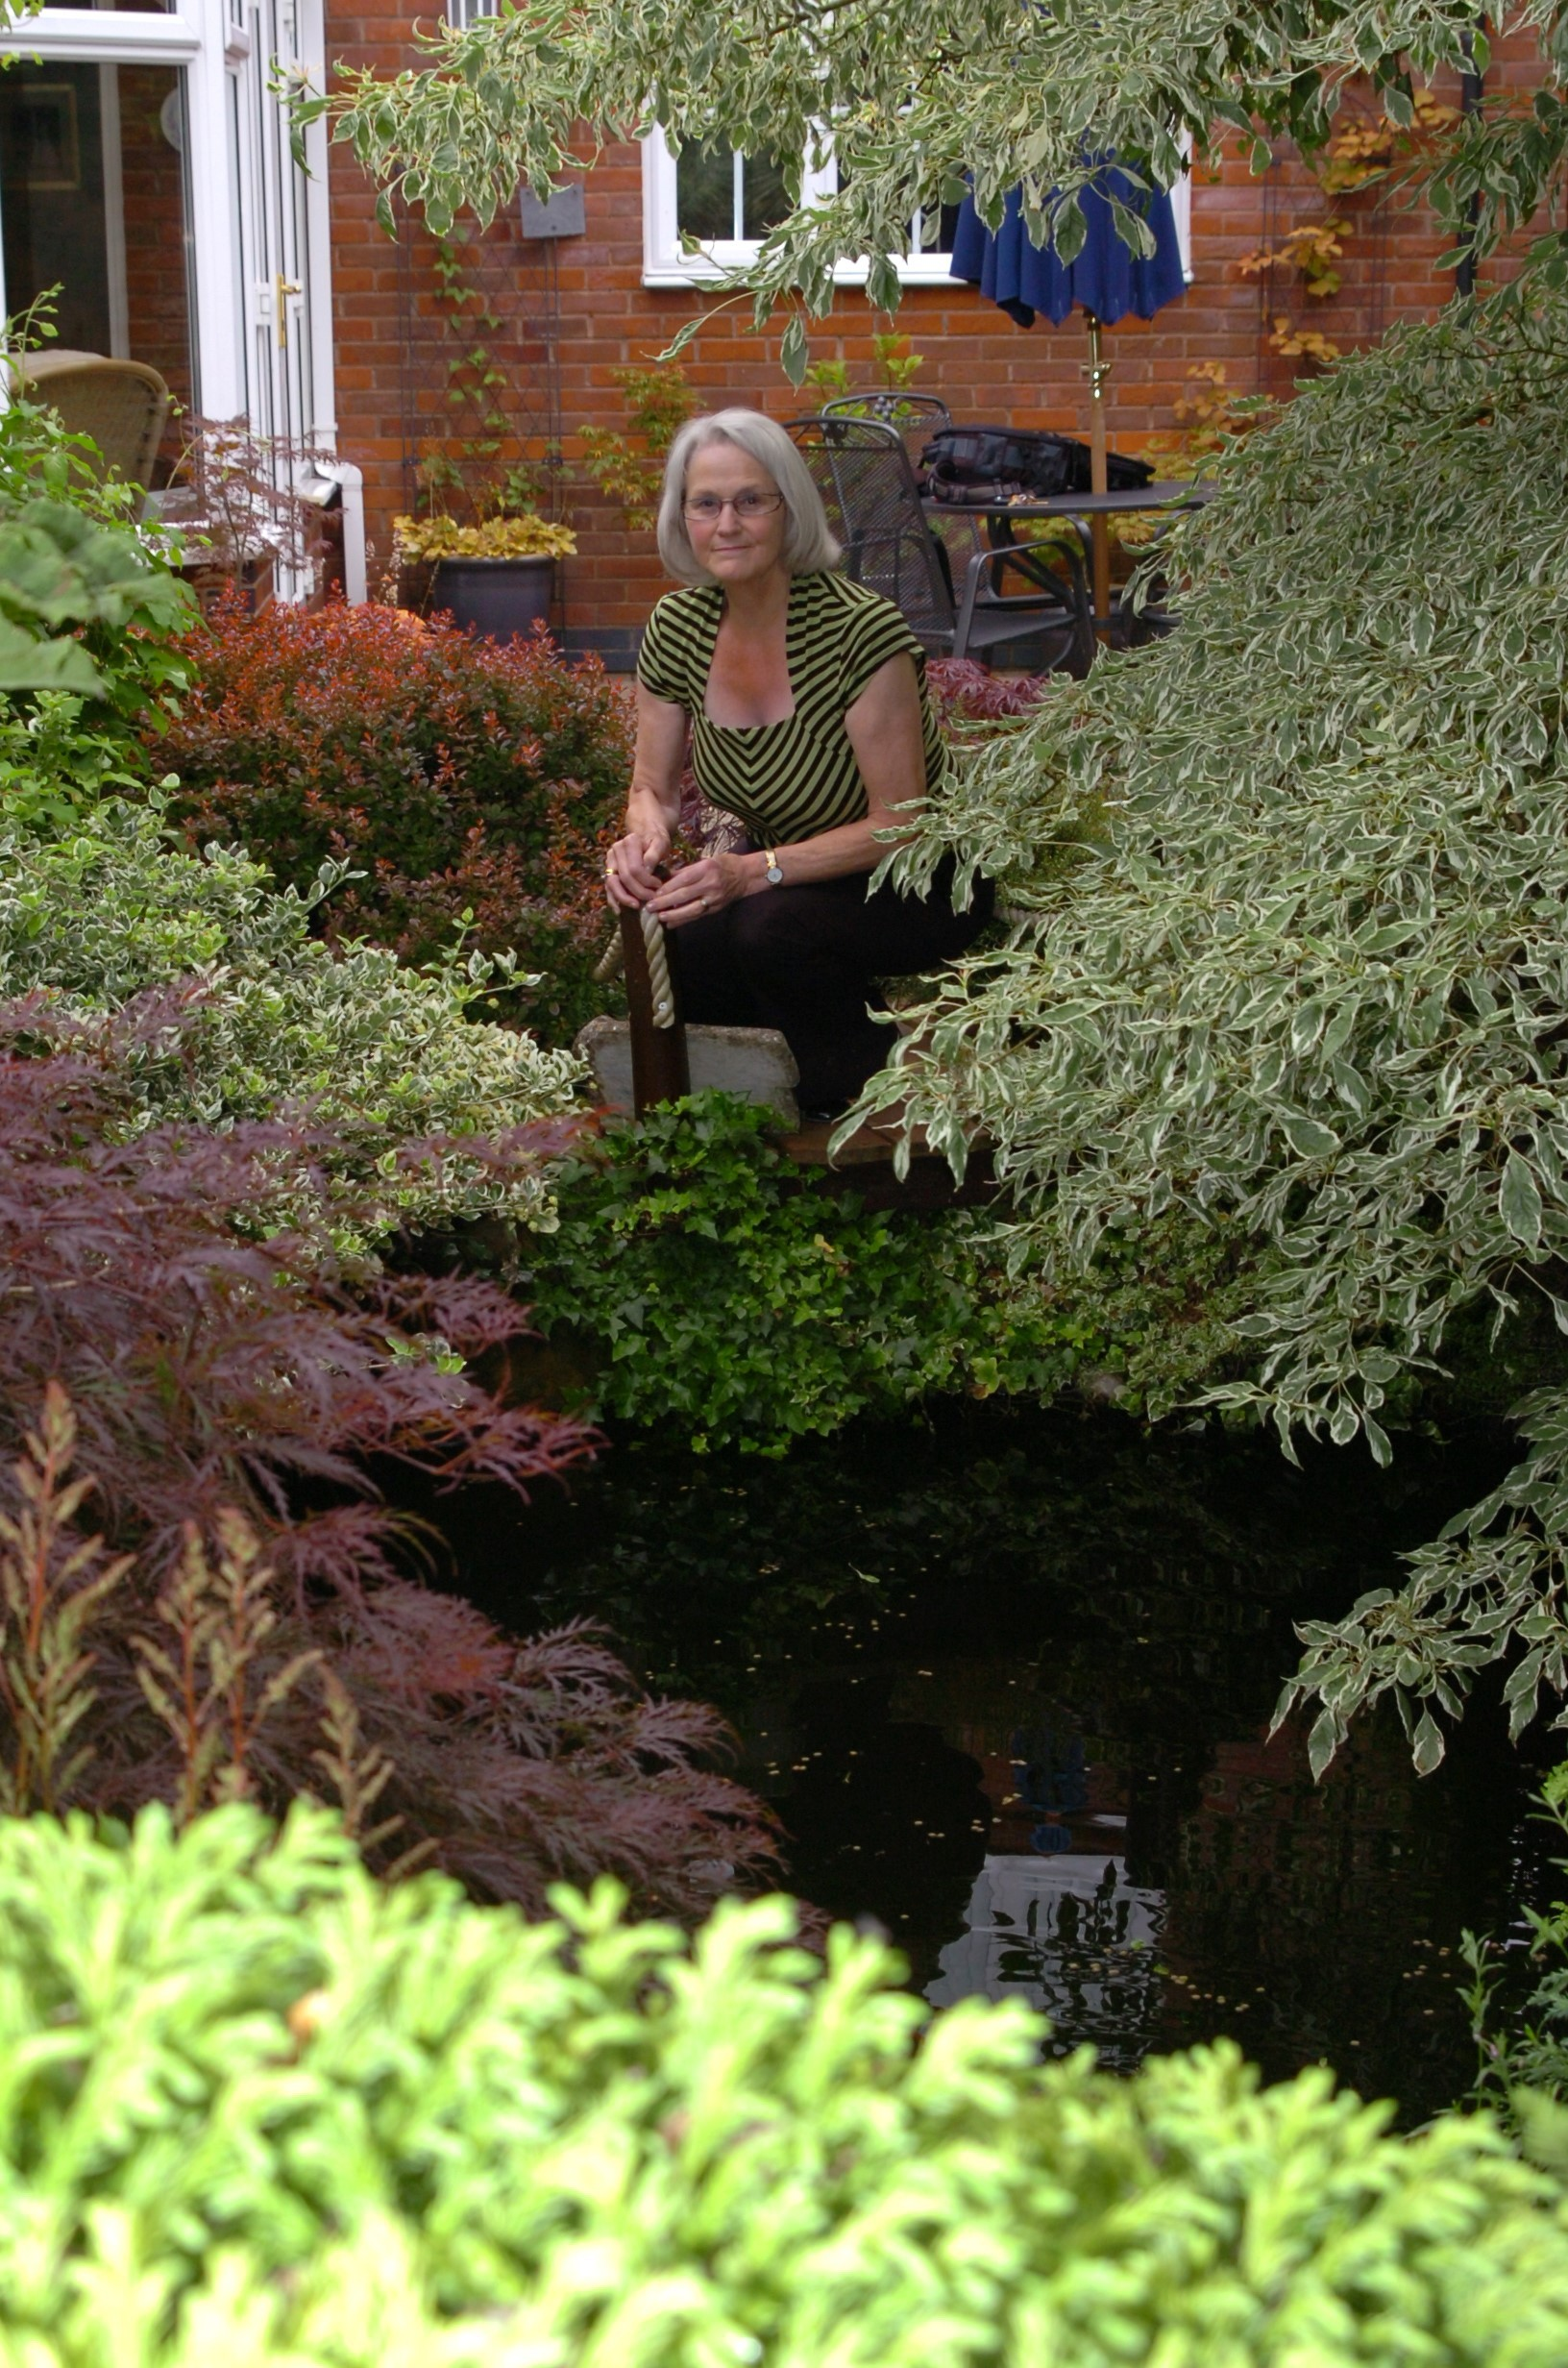 Droitwich couple open garden in memory of their son